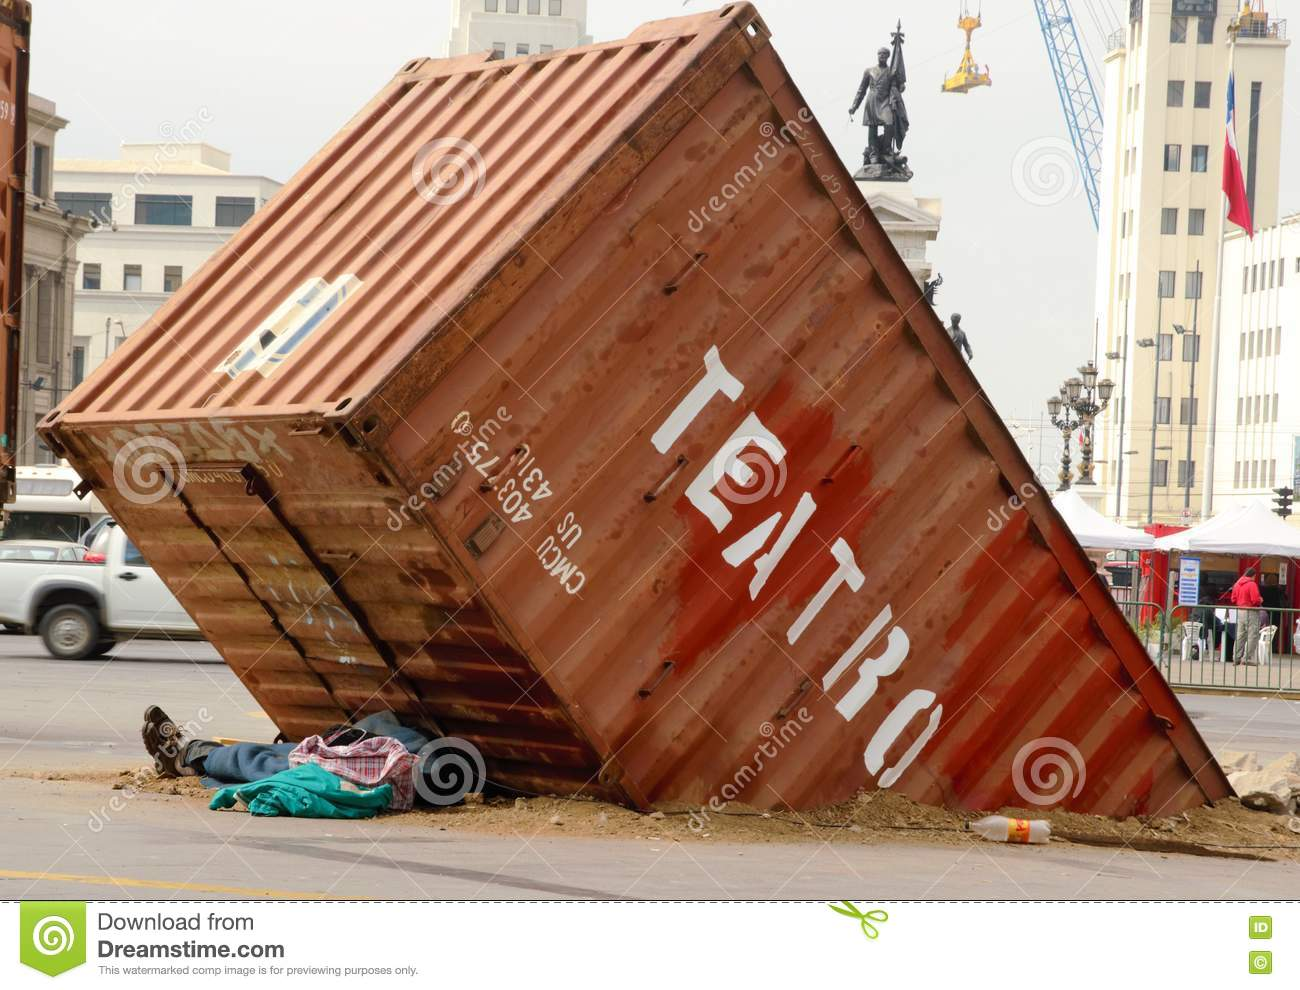 Best Kitchen Gallery: Man Sleeping Under Half Buried Container Stock Image Image Of of Buried Shipping Container on rachelxblog.com